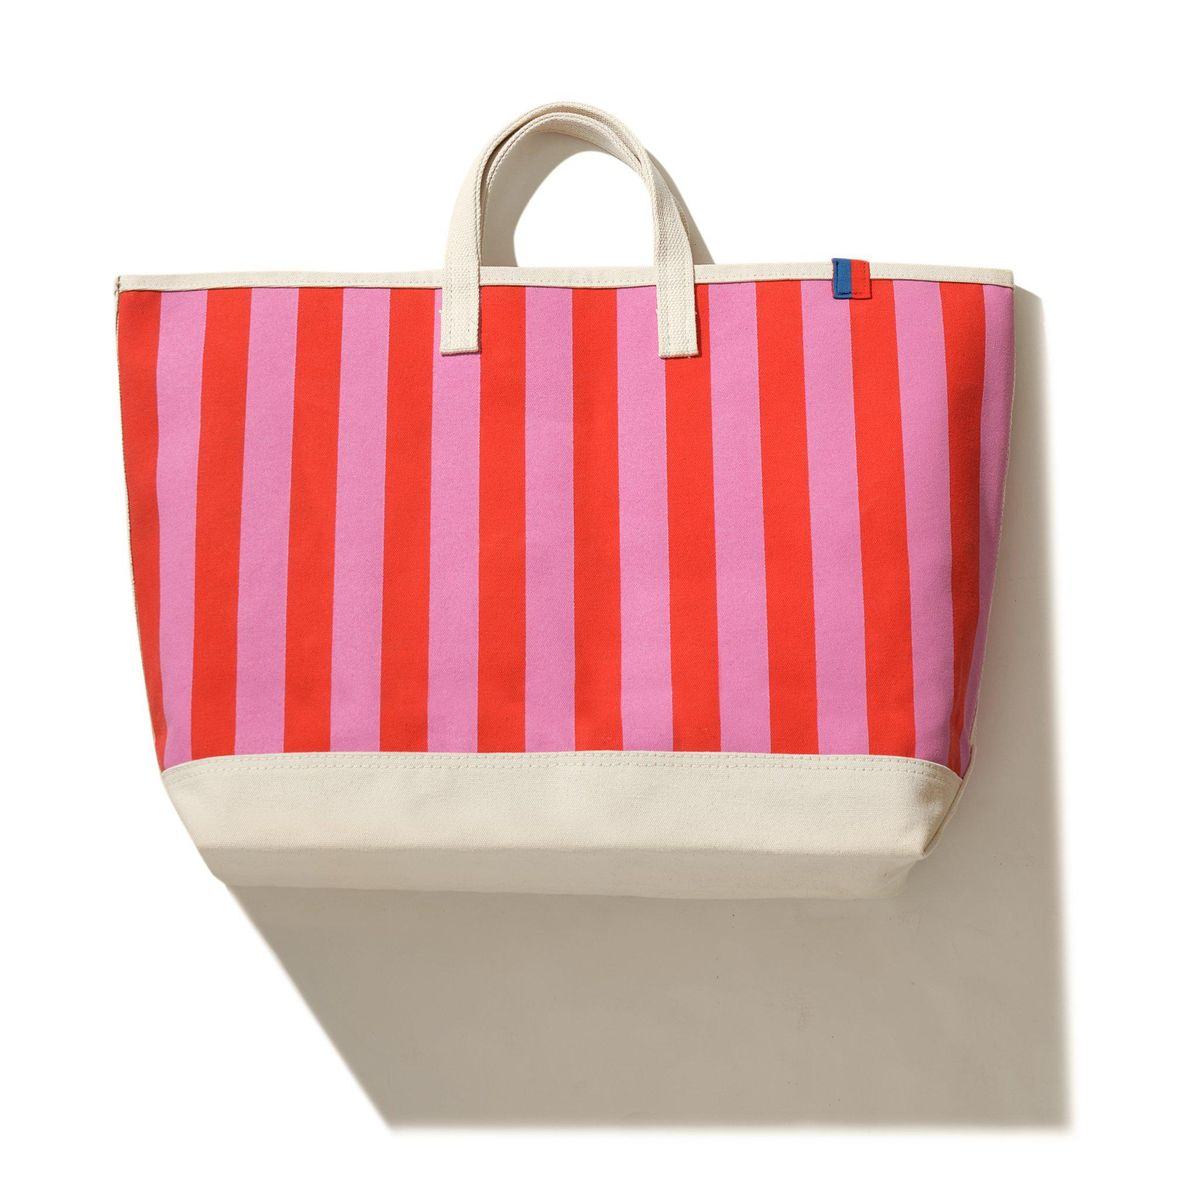 The All Over Striped Tote